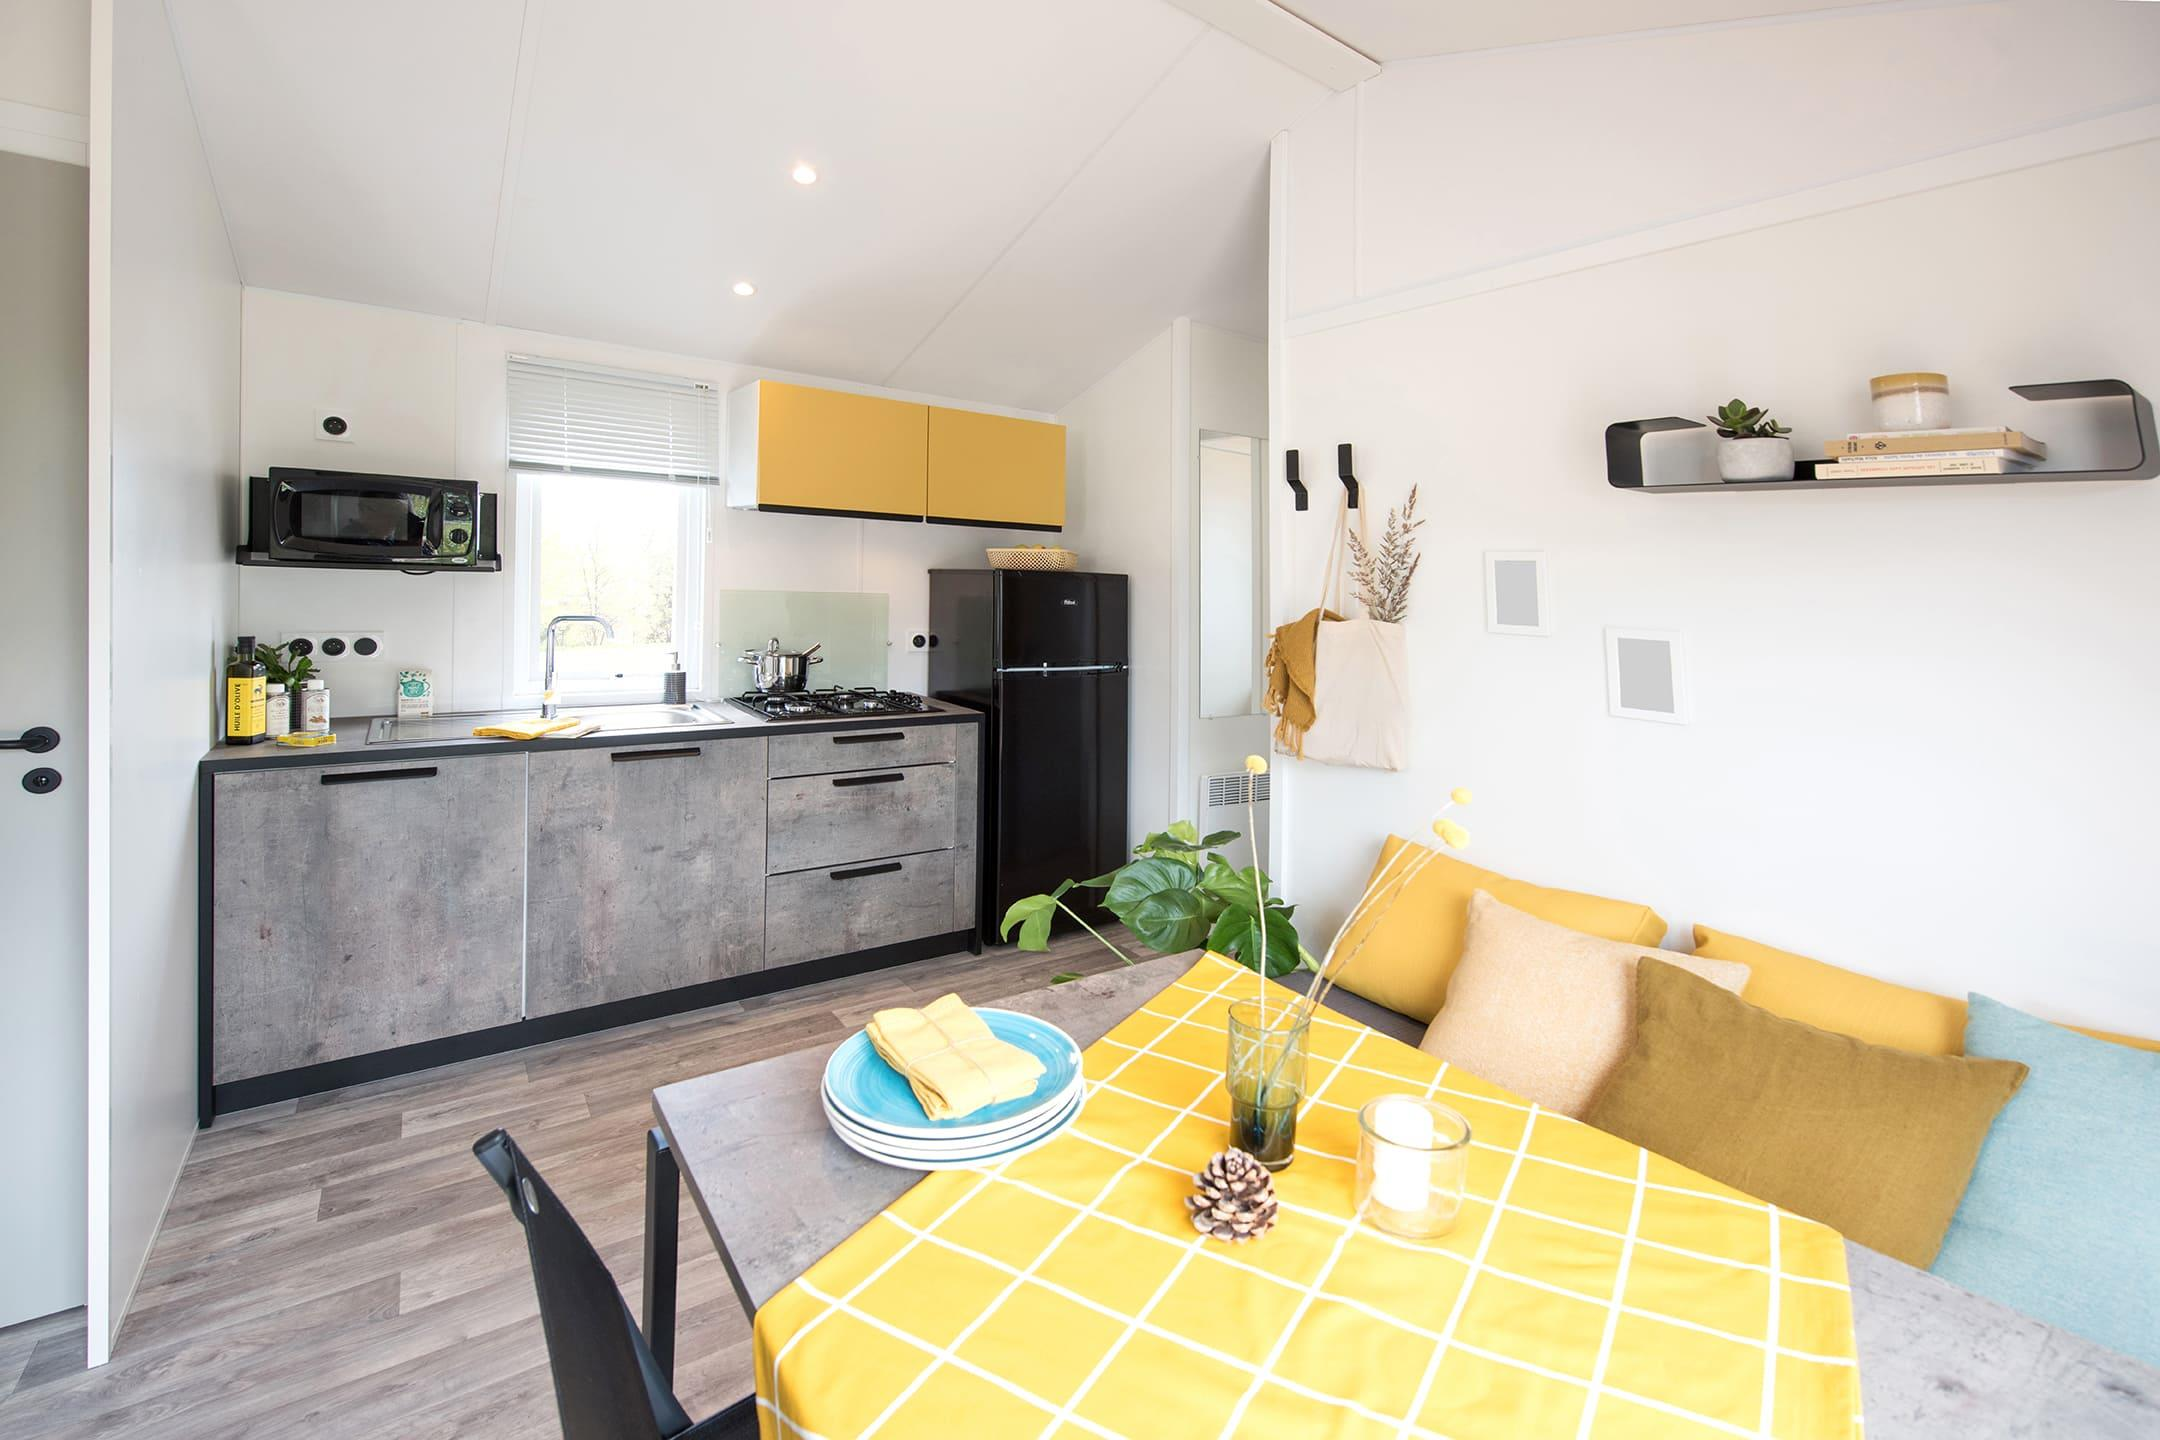 Location - Chalet Malaga 4 Pers 2 Chambres( M ) - Camping Airotel Oléron